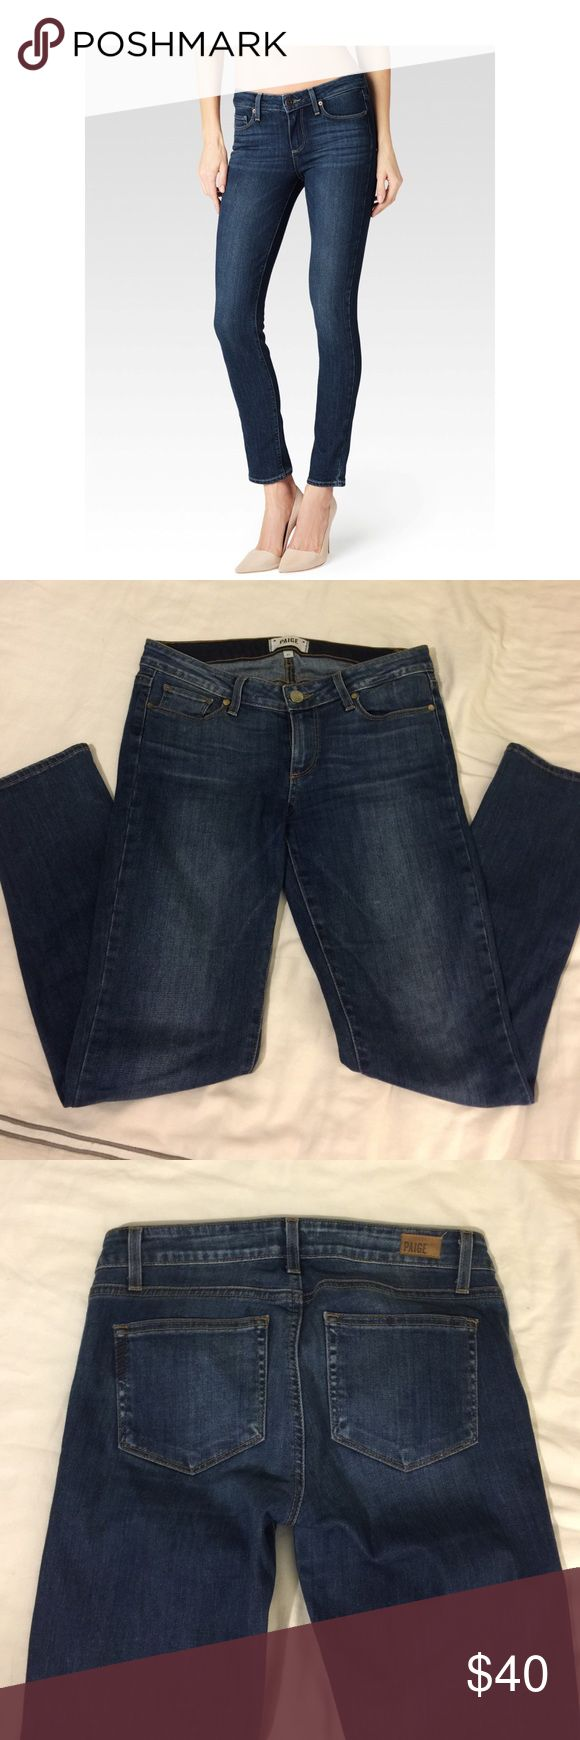 """Paige premium denim skinny jeans Excellent condition! Worn a couple times, hand washed and hung to dry. Basically like new. Style is the """"skyline ankle peg"""" Paige Jeans Pants Ankle & Cropped"""